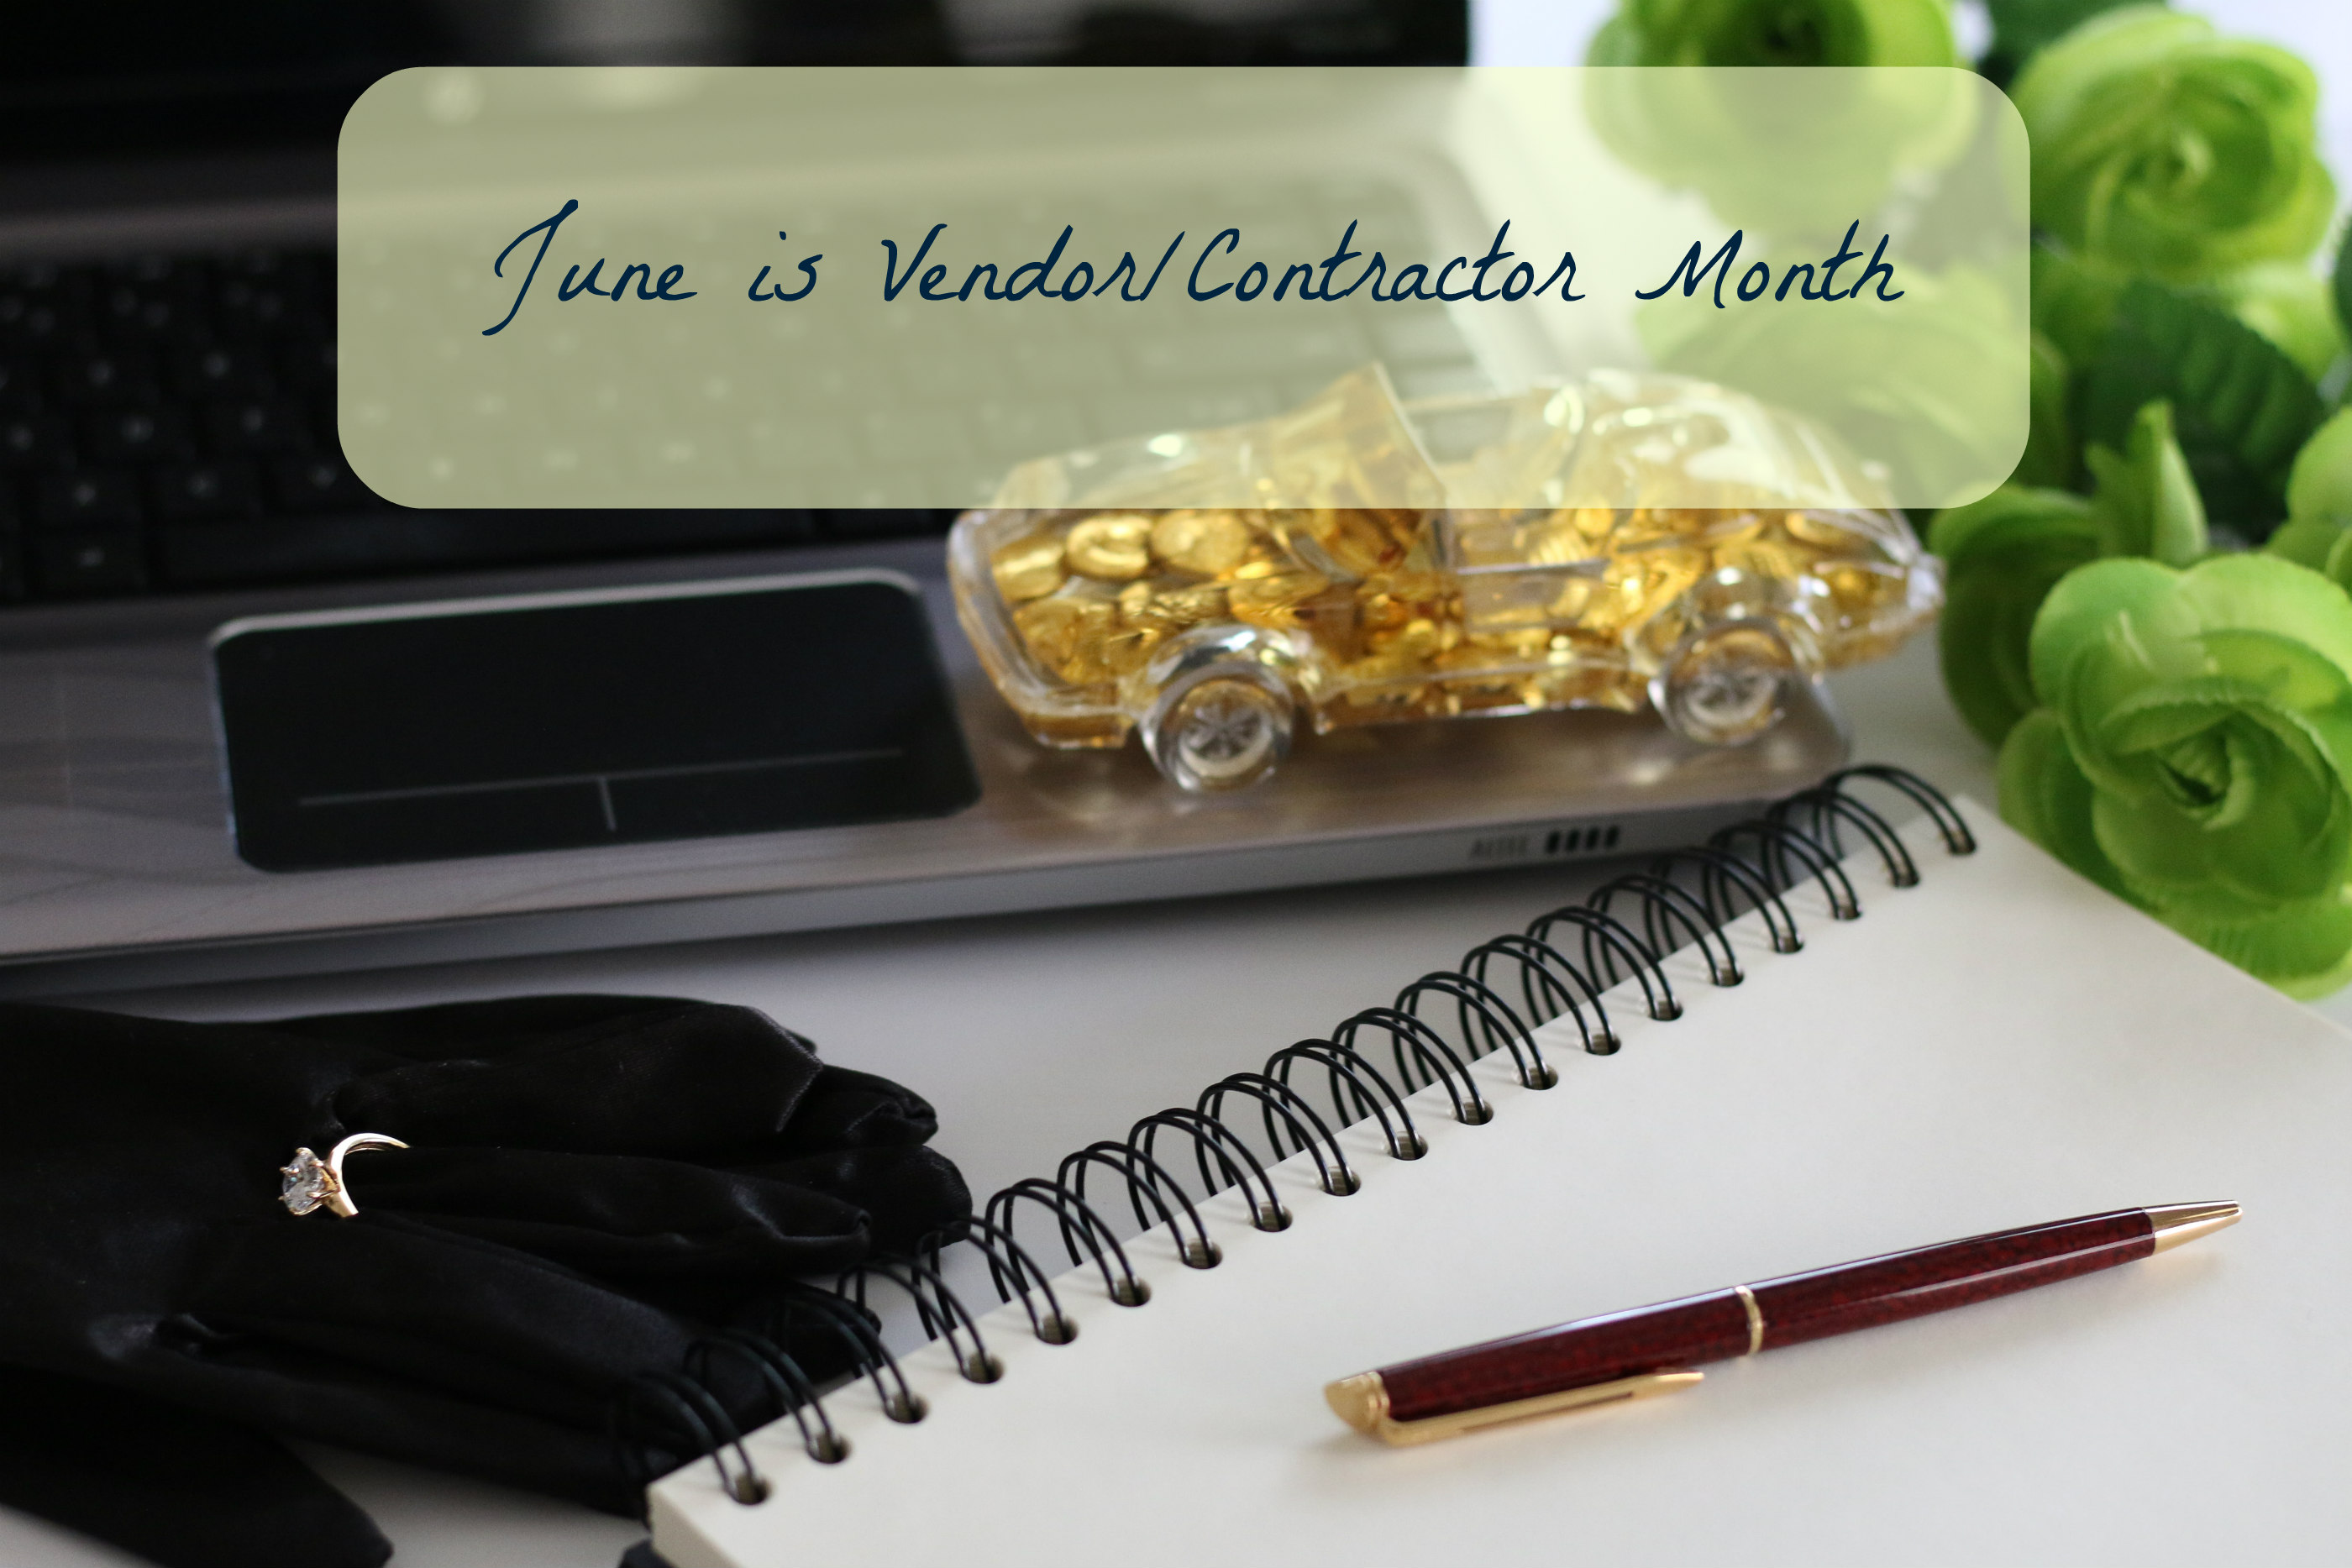 June is Vendor Contractor Month